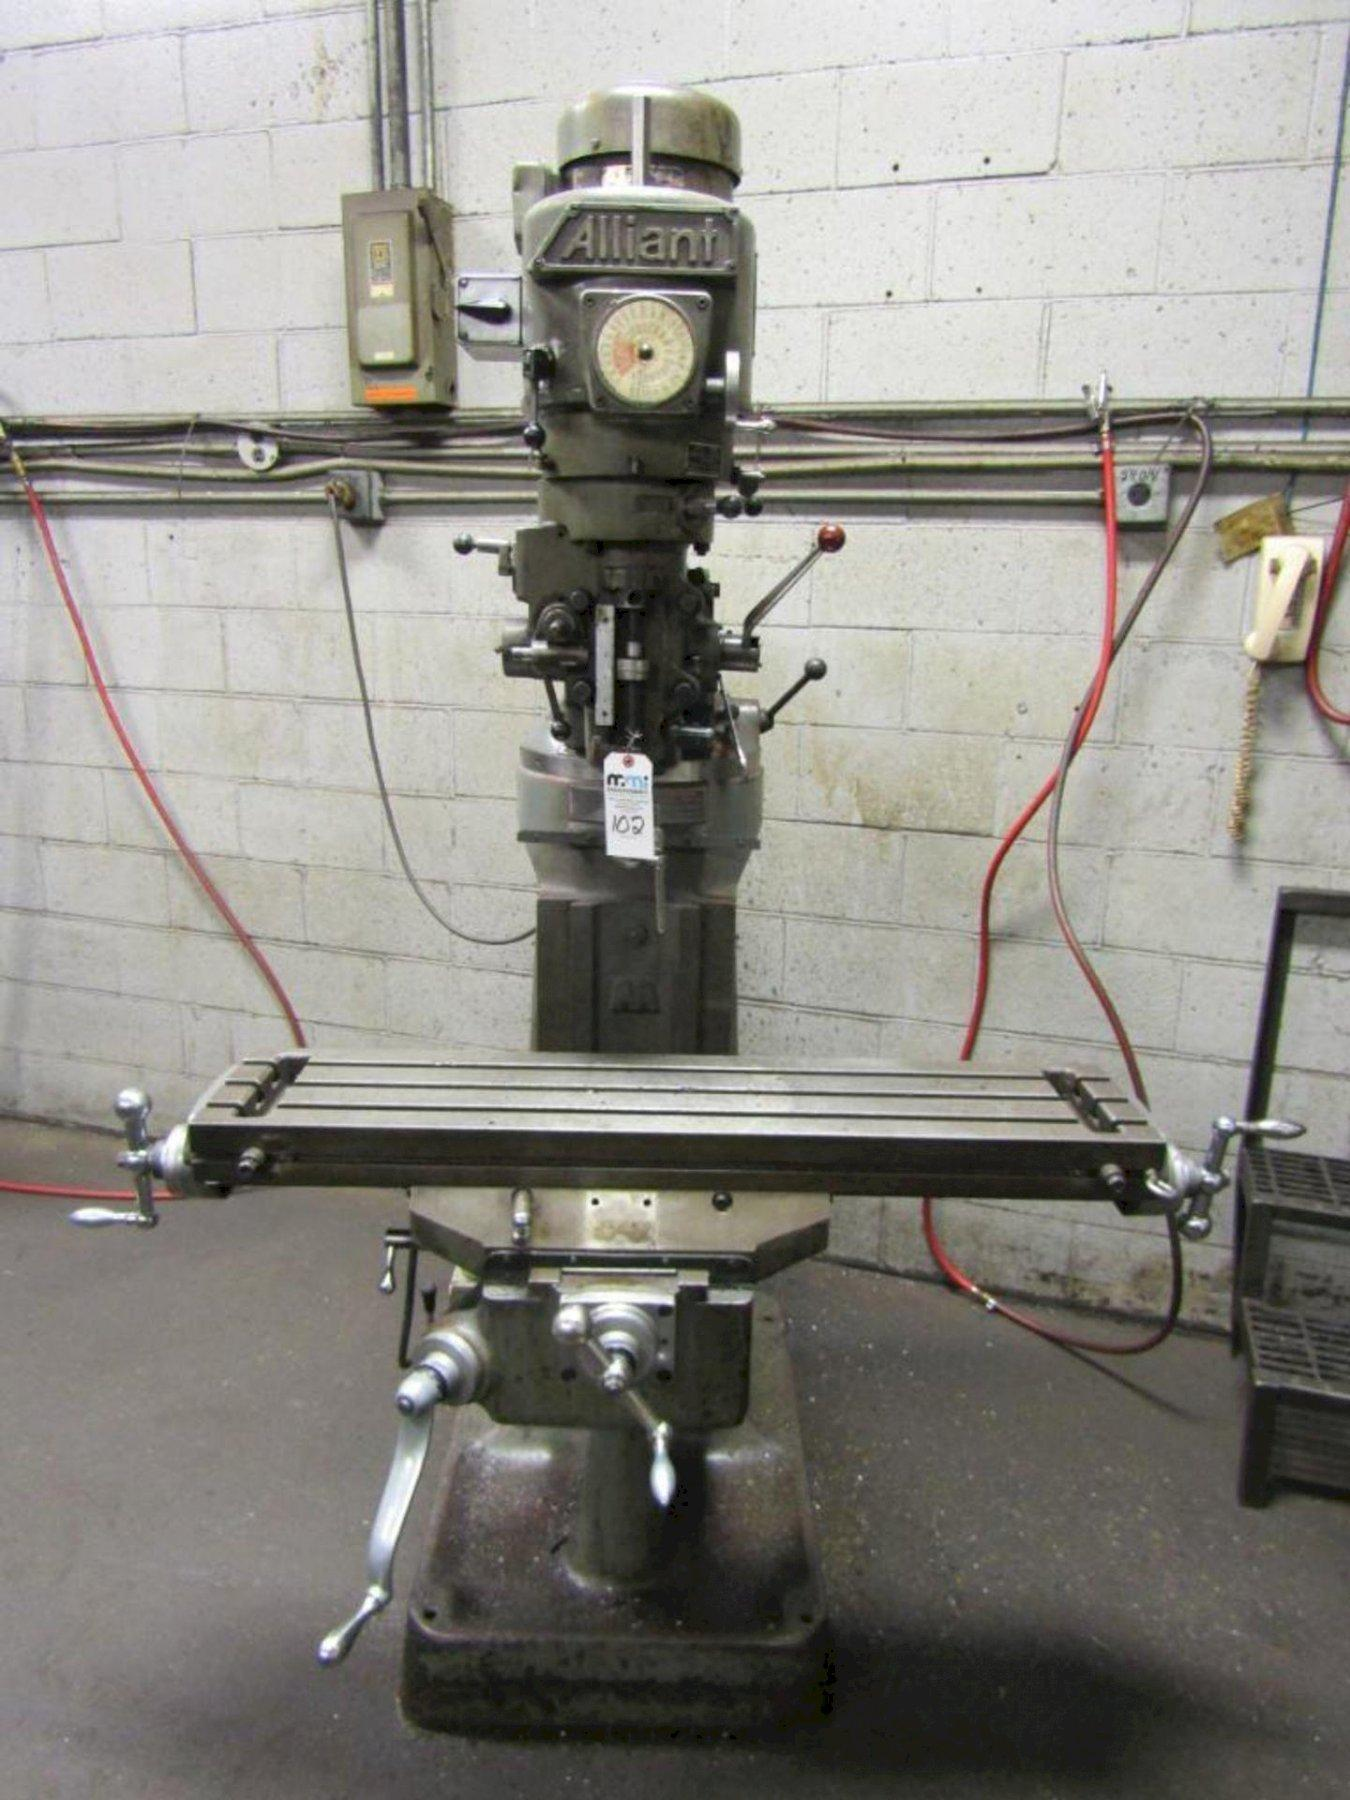 1 - PREOWNED ALLIANT VERTICAL MILLING MACHINE, MODEL #: RT2, S/N 315488